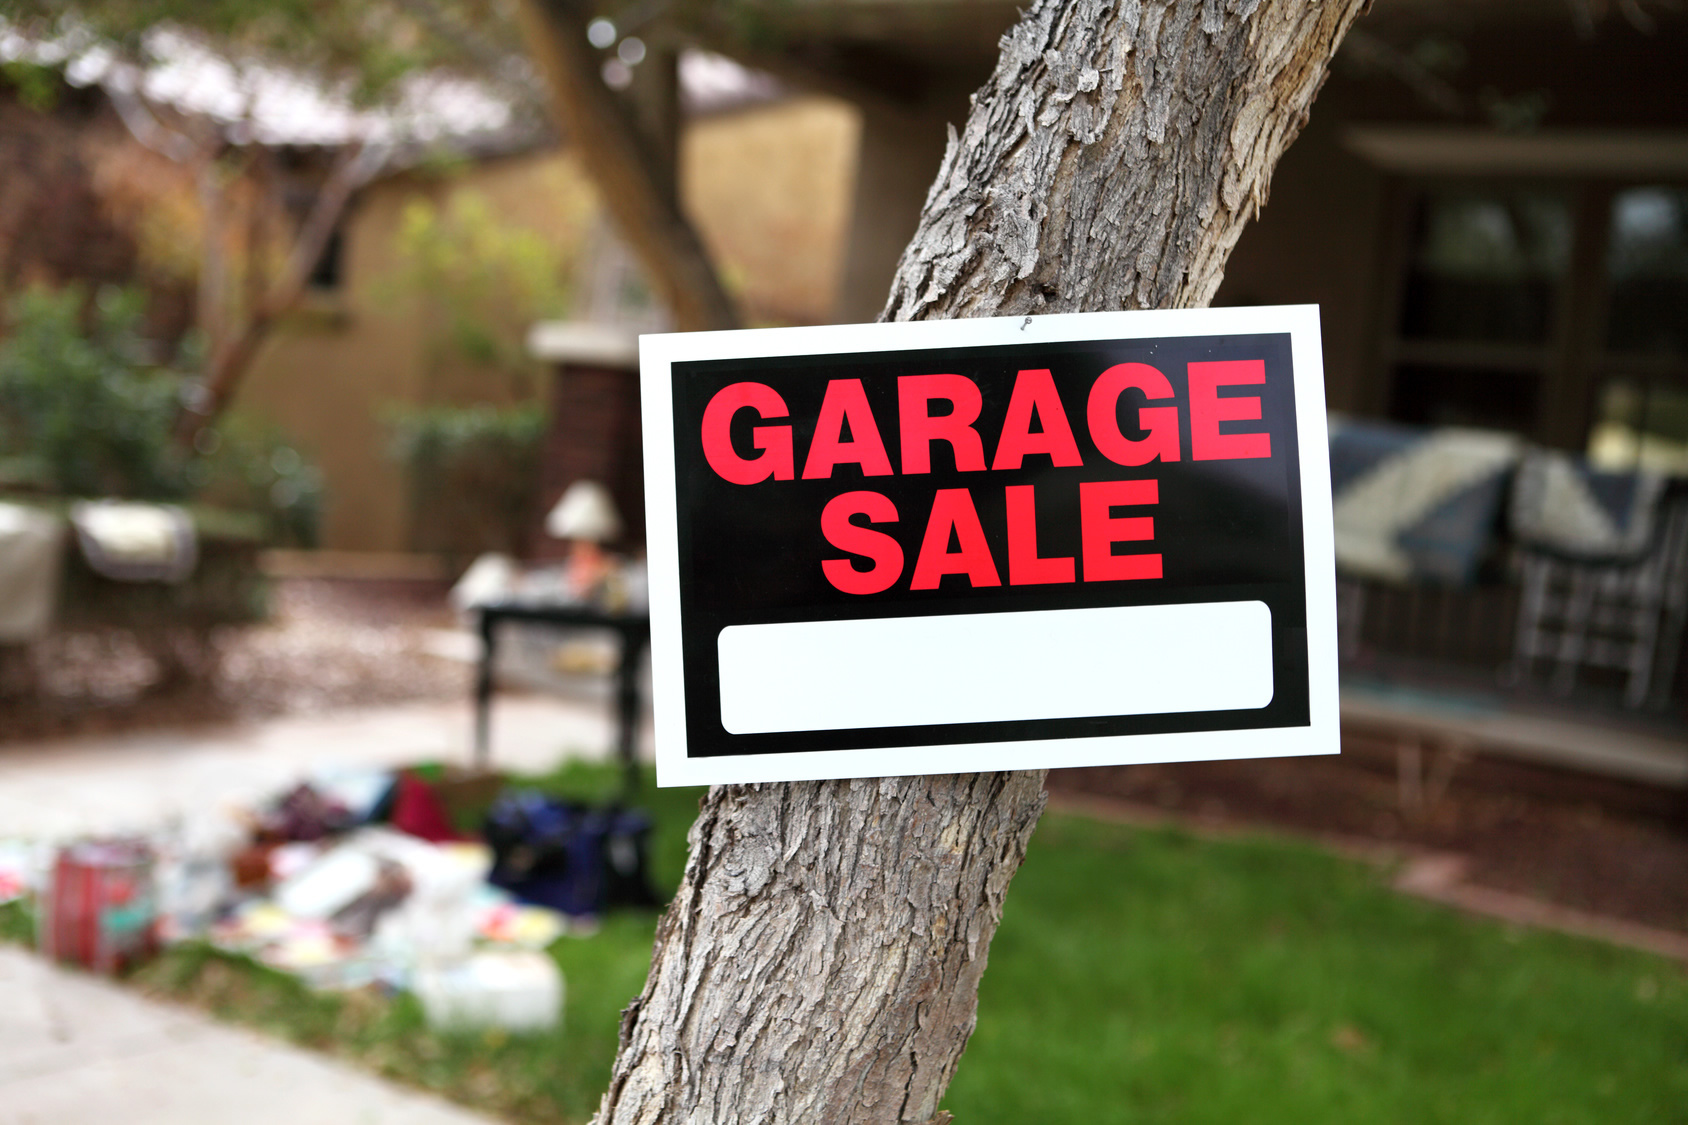 TERRAIN FALL GARAGE SALE AND DONATION DAY